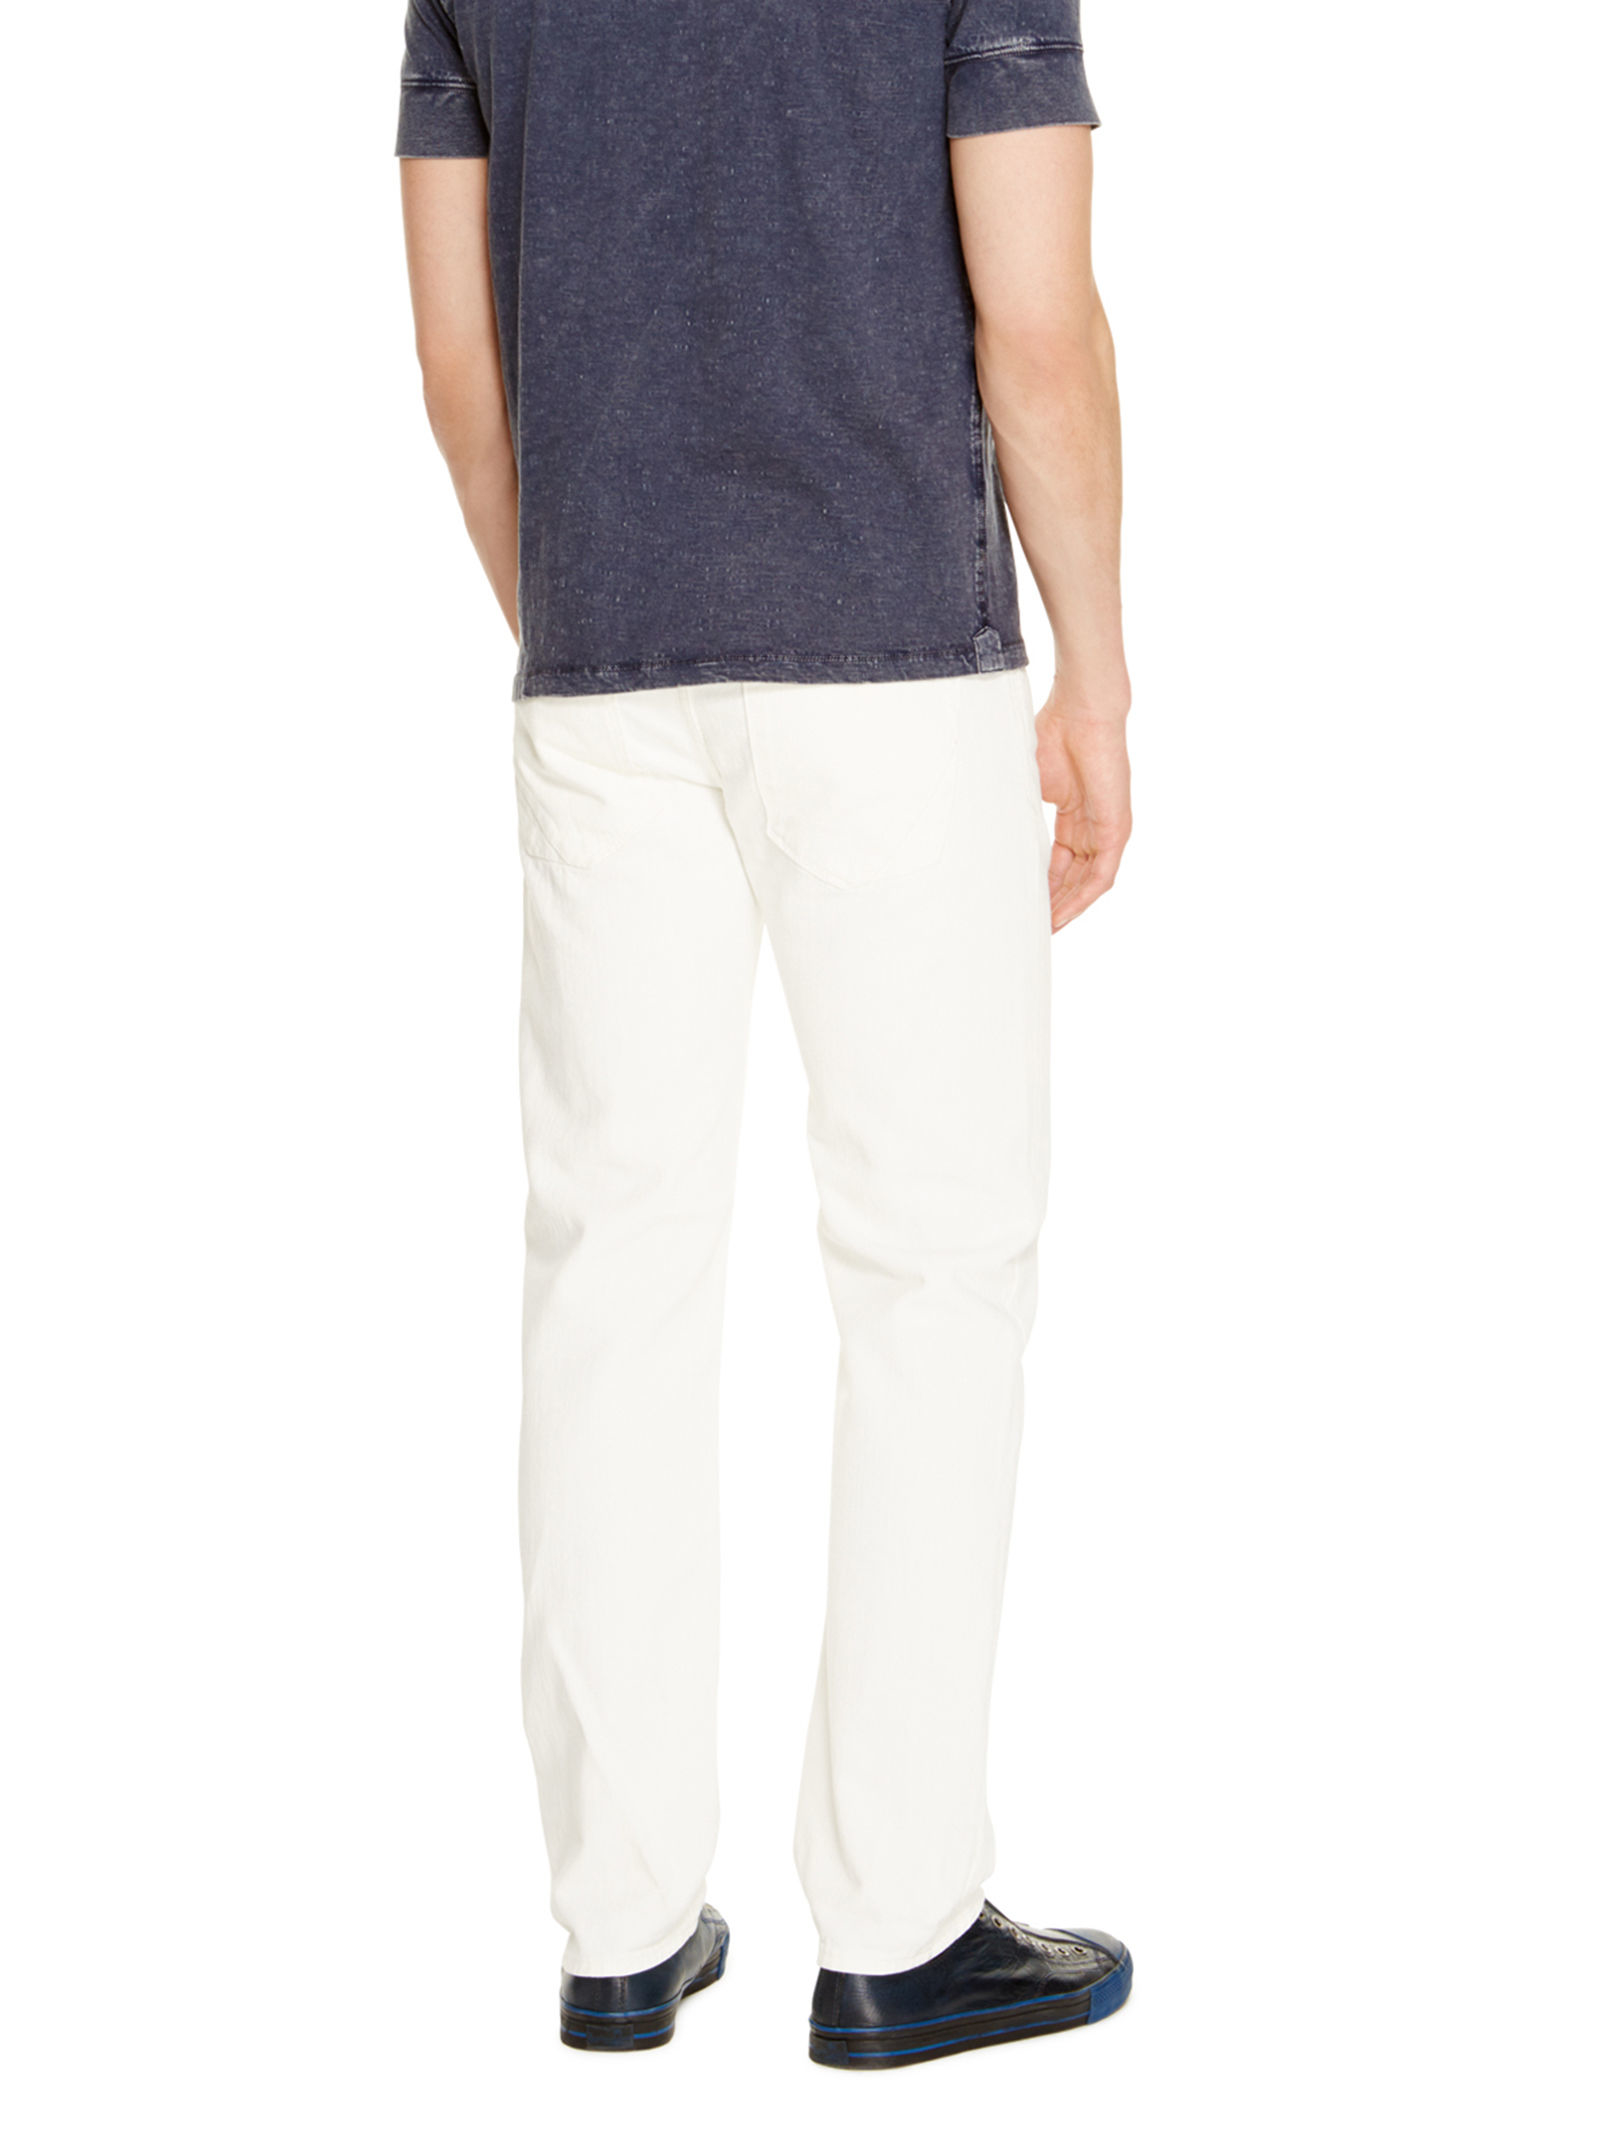 "Dkny Jeans Bleecker 32"", White Wash in White for Men 